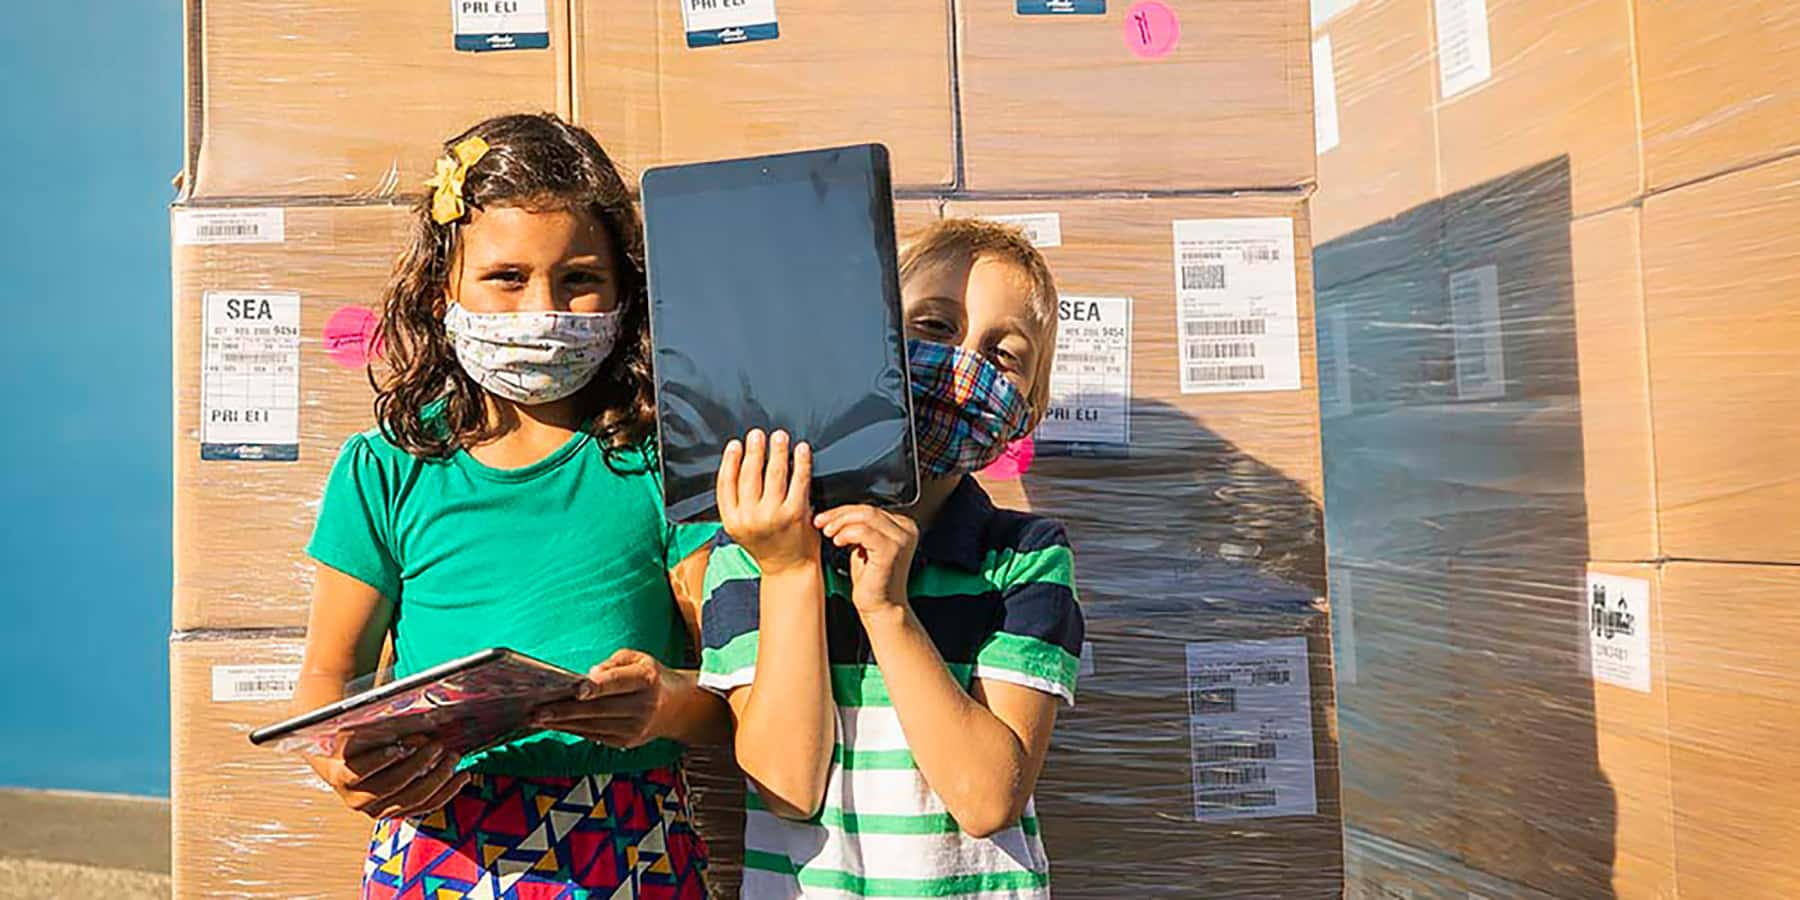 Alaska Air Cargo delivers 12,000 iPads to kids.